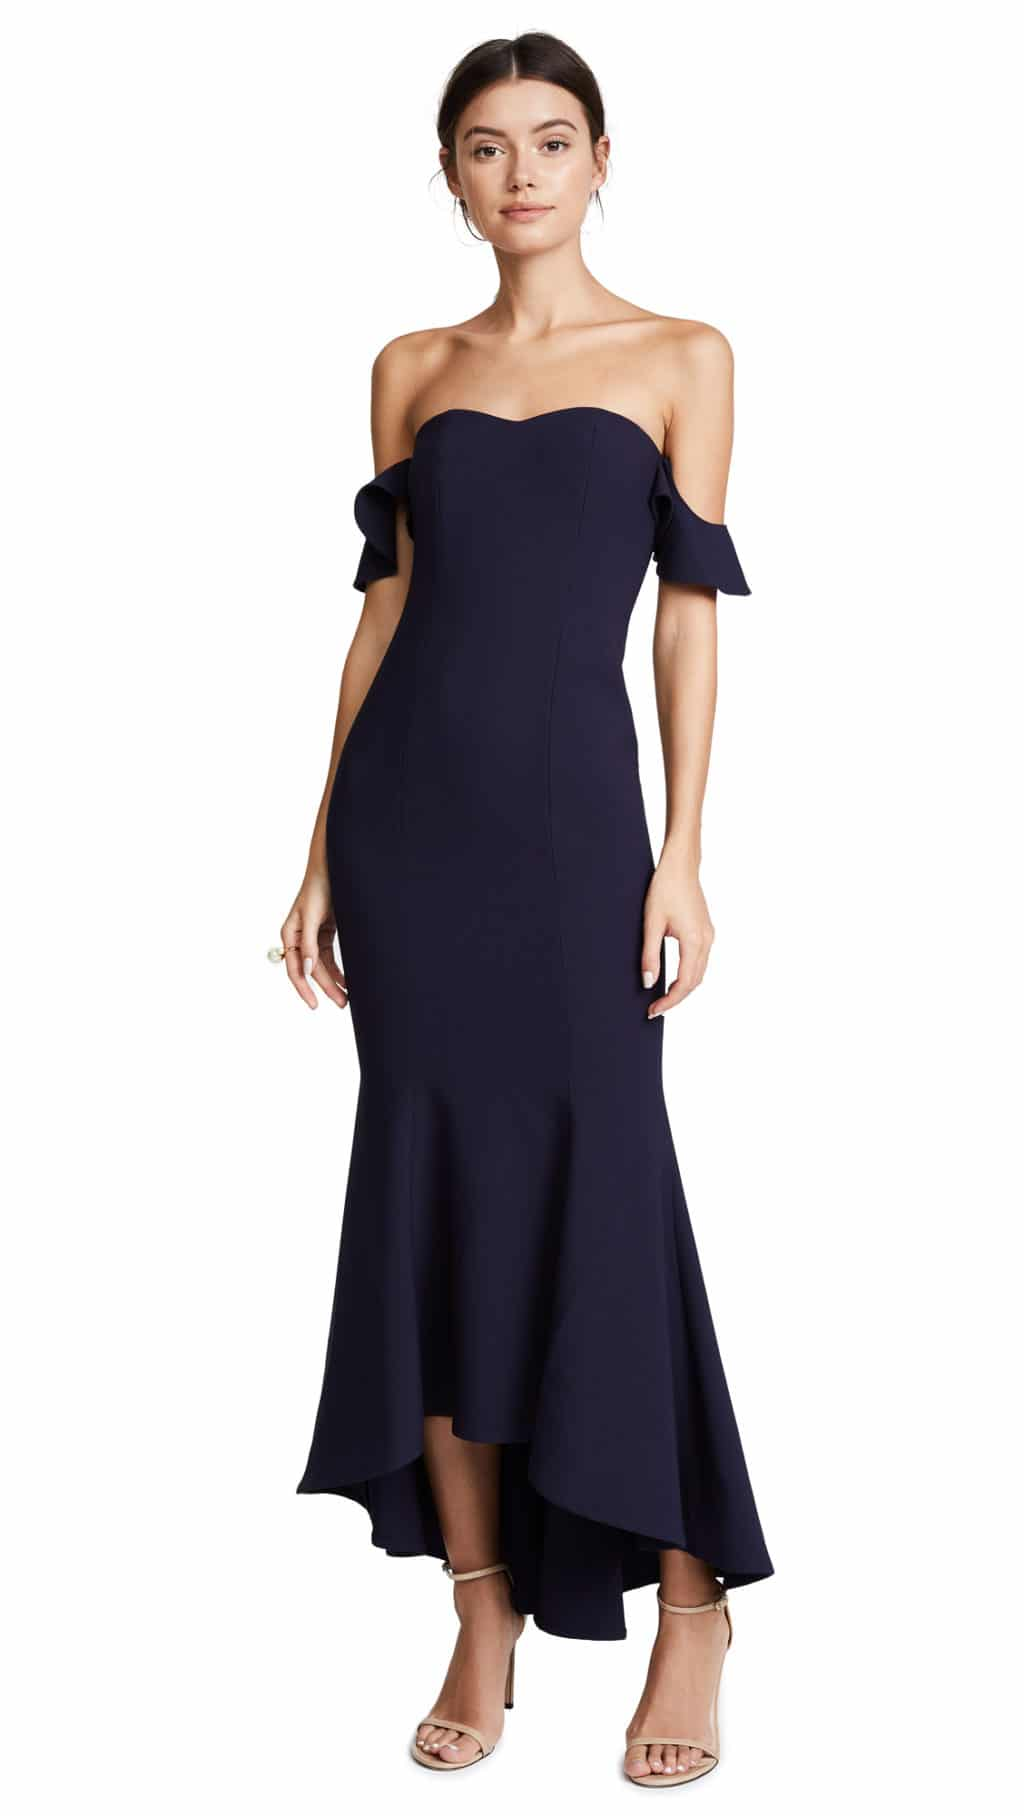 LIKELY Sunset Navy Blue Gown - We Select Dresses bb0d0ff0b4d5